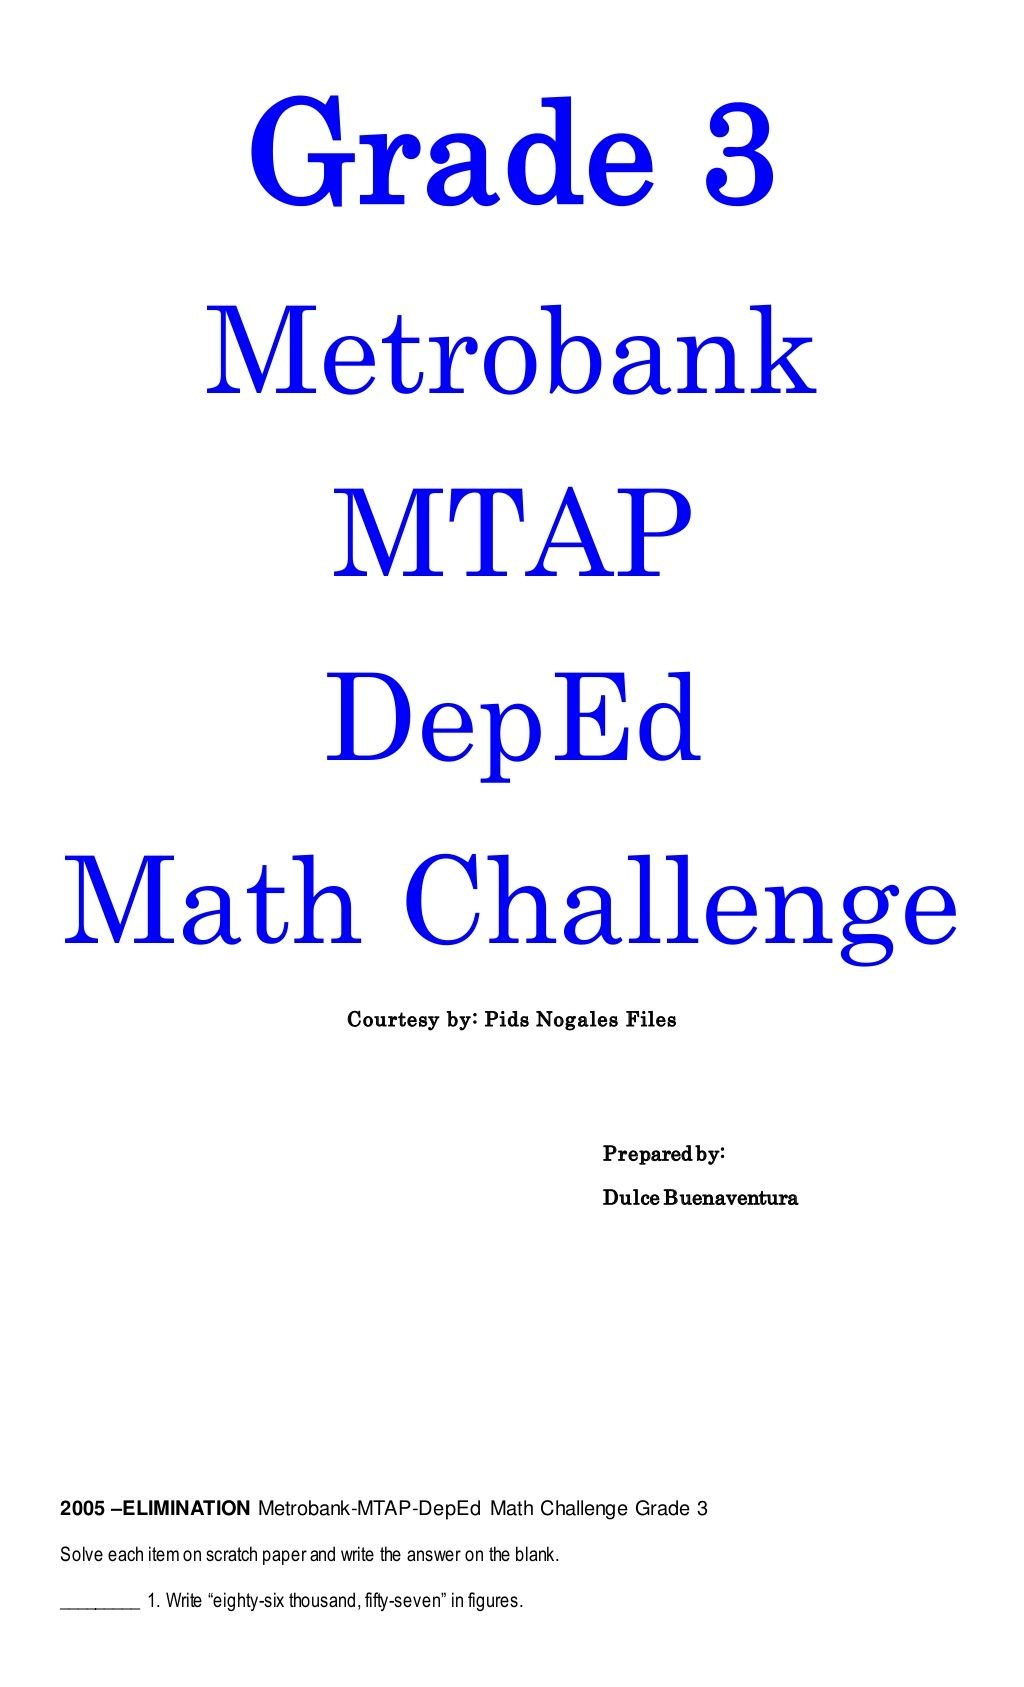 hight resolution of Grade 3 Metrobank MTAP DepEd Math Challenge Courtesy by: Pids Nogales Files  Prepared by: Dulce Buenaventura 2005 –EL…   Math challenge